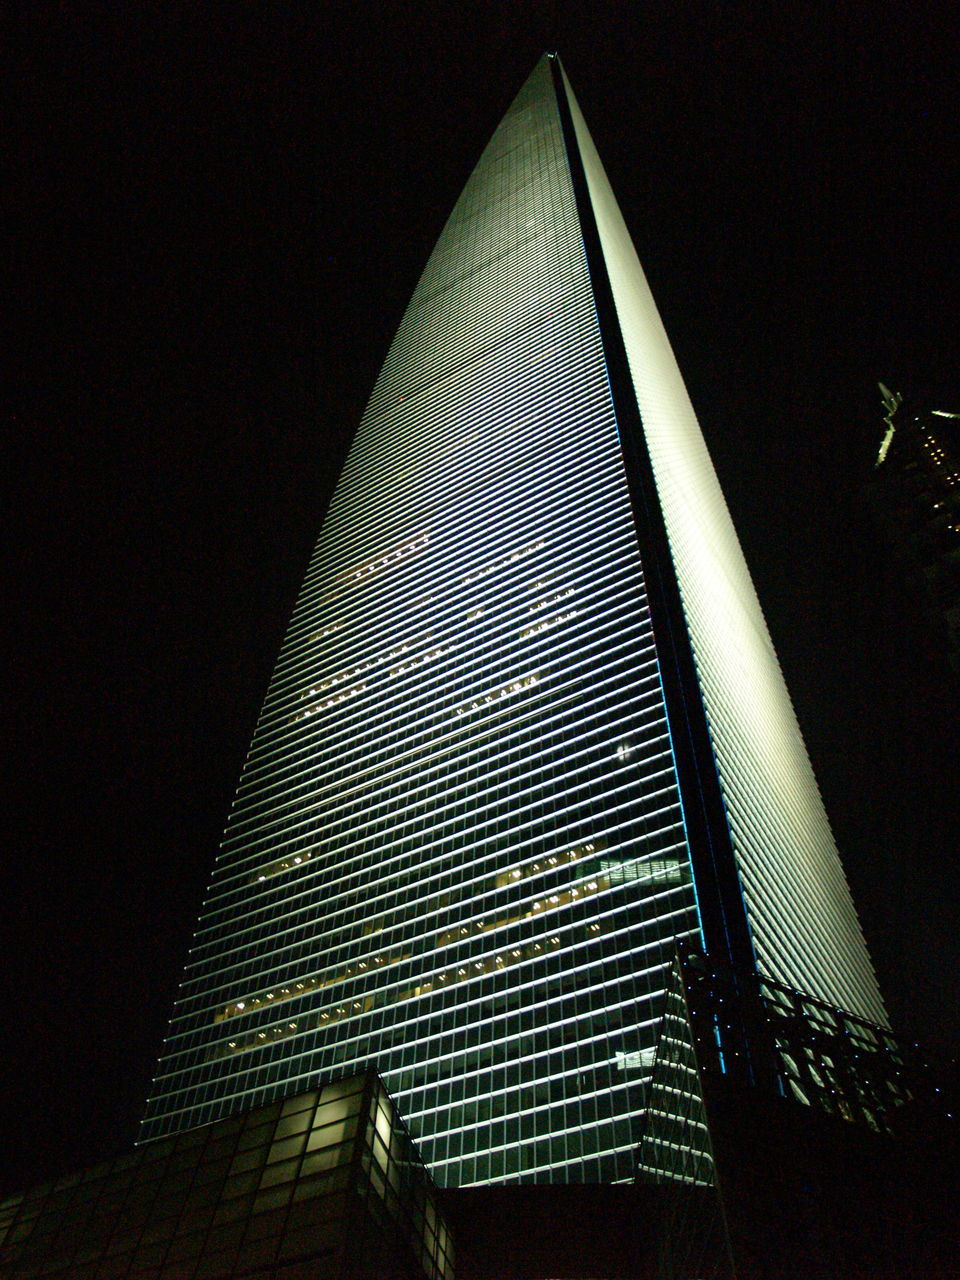 architecture, built structure, low angle view, modern, building exterior, no people, illuminated, indoors, skyscraper, travel destinations, pyramid, day, sky